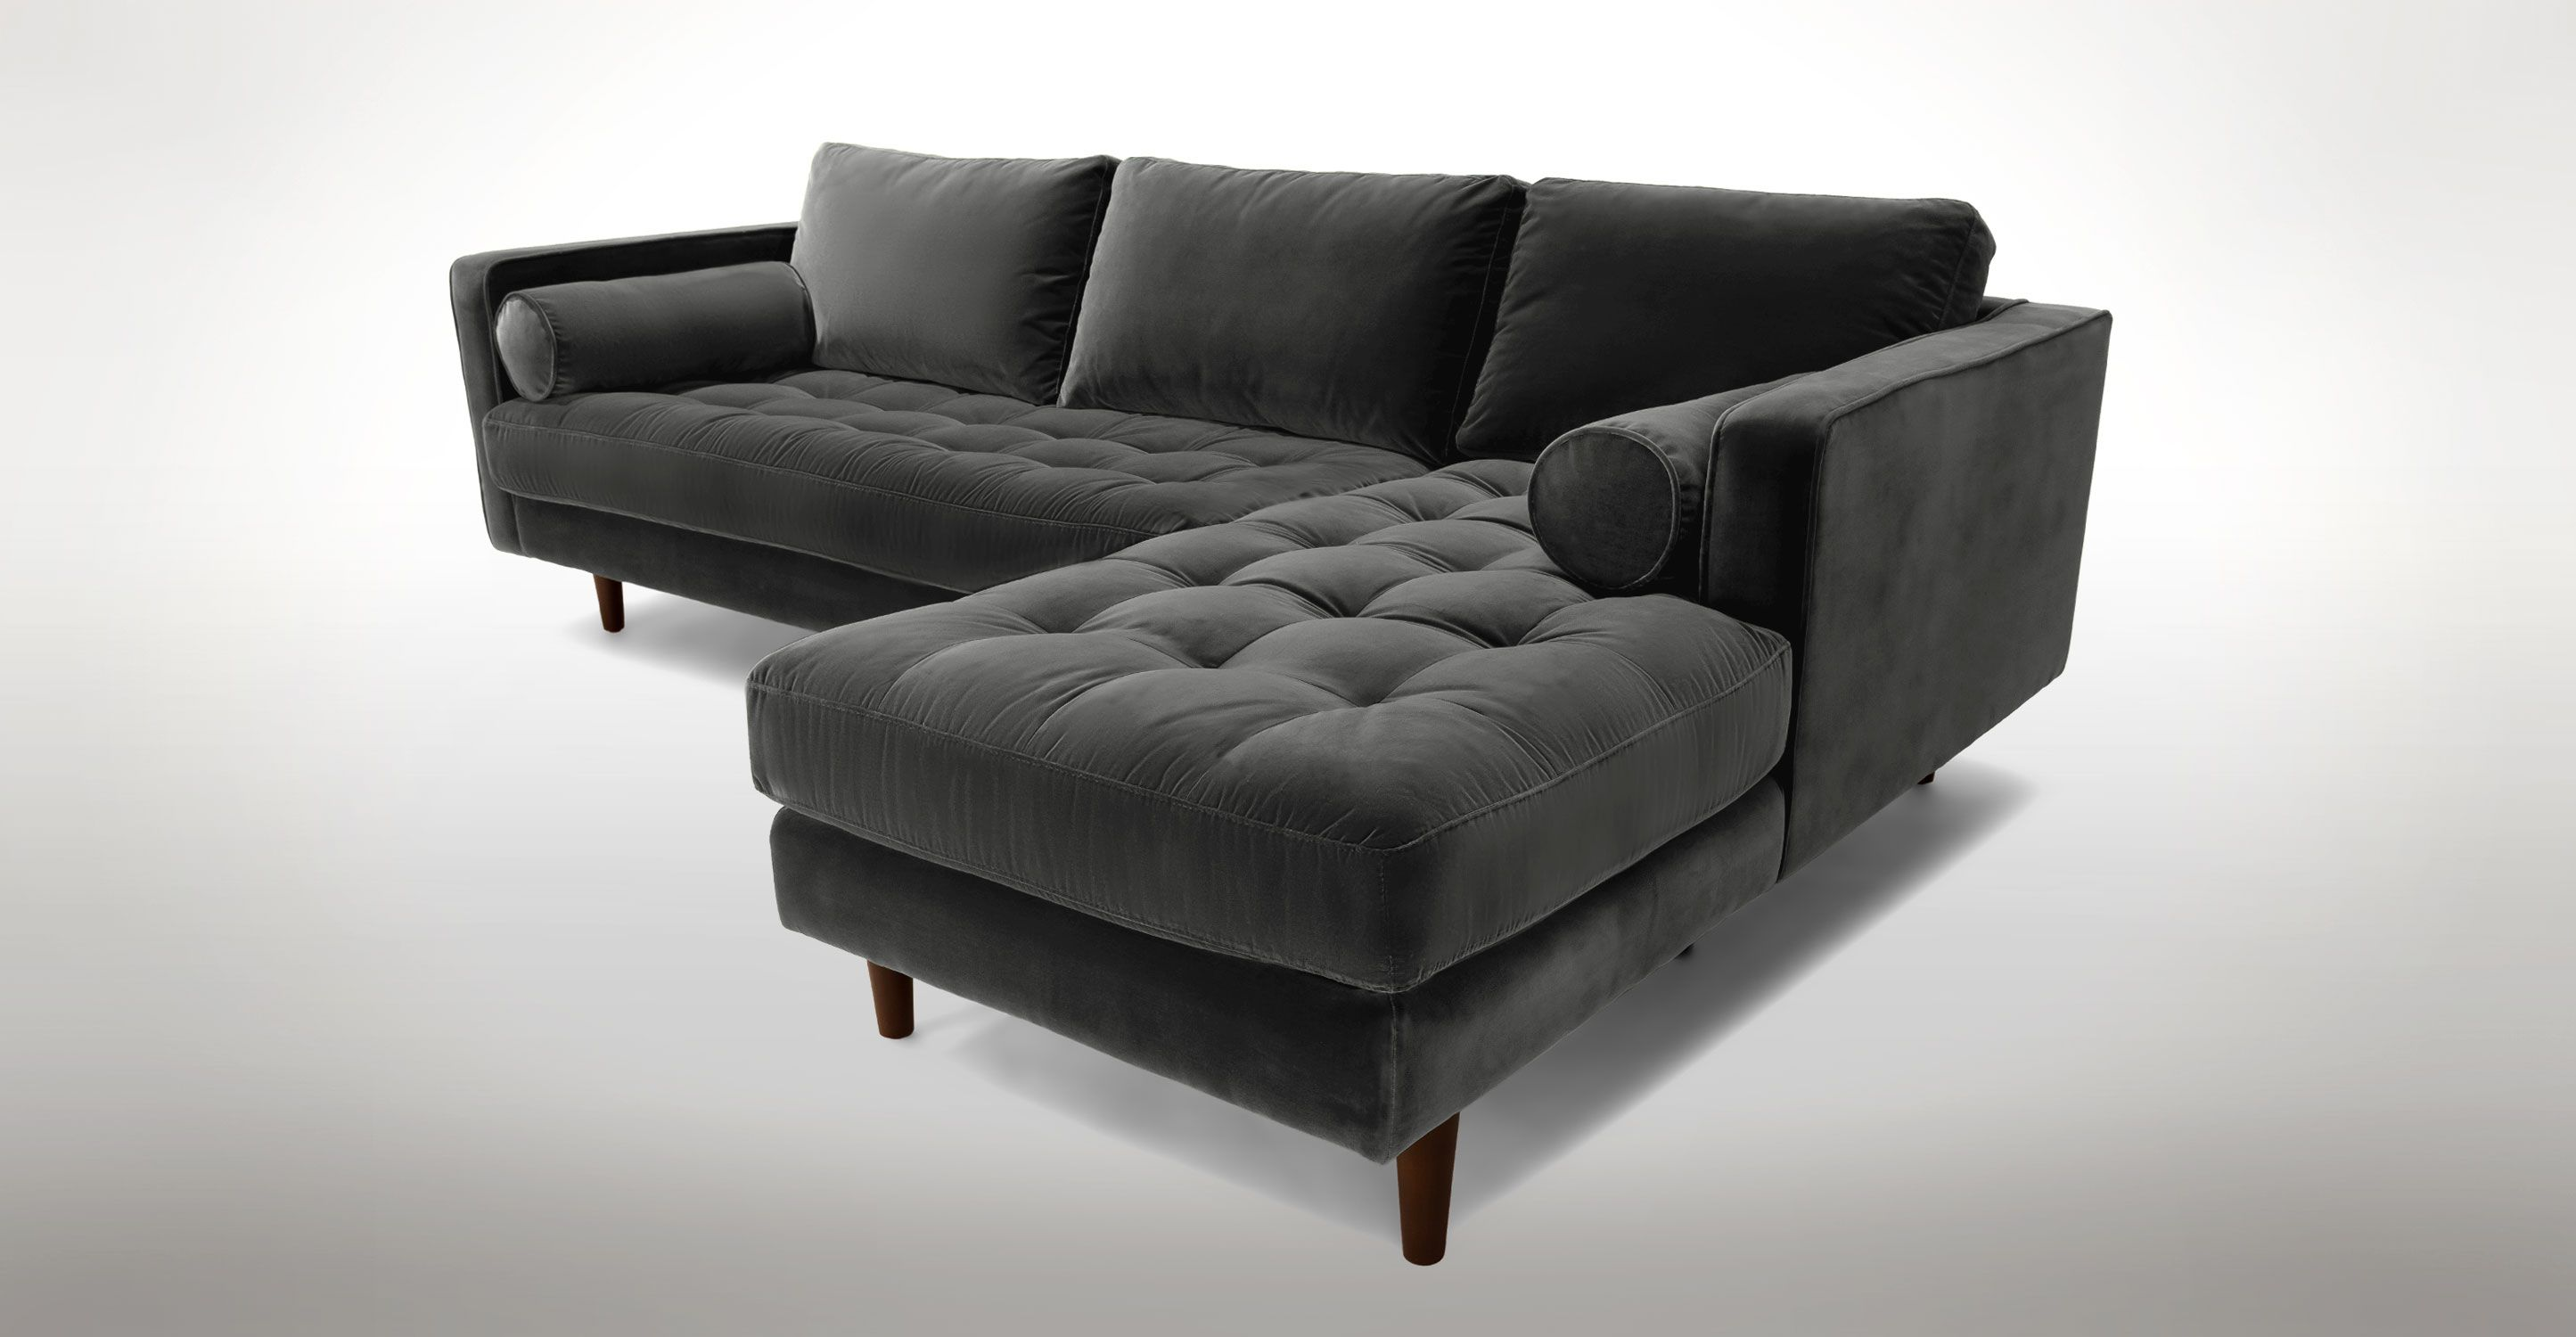 Sven Shadow Gray Right Sectional Sofa Sectionals Bryght Modern Mid Century And Sc Modern Sofa Sectional Sectional Sofa Mid Century Modern Sectional Sofa